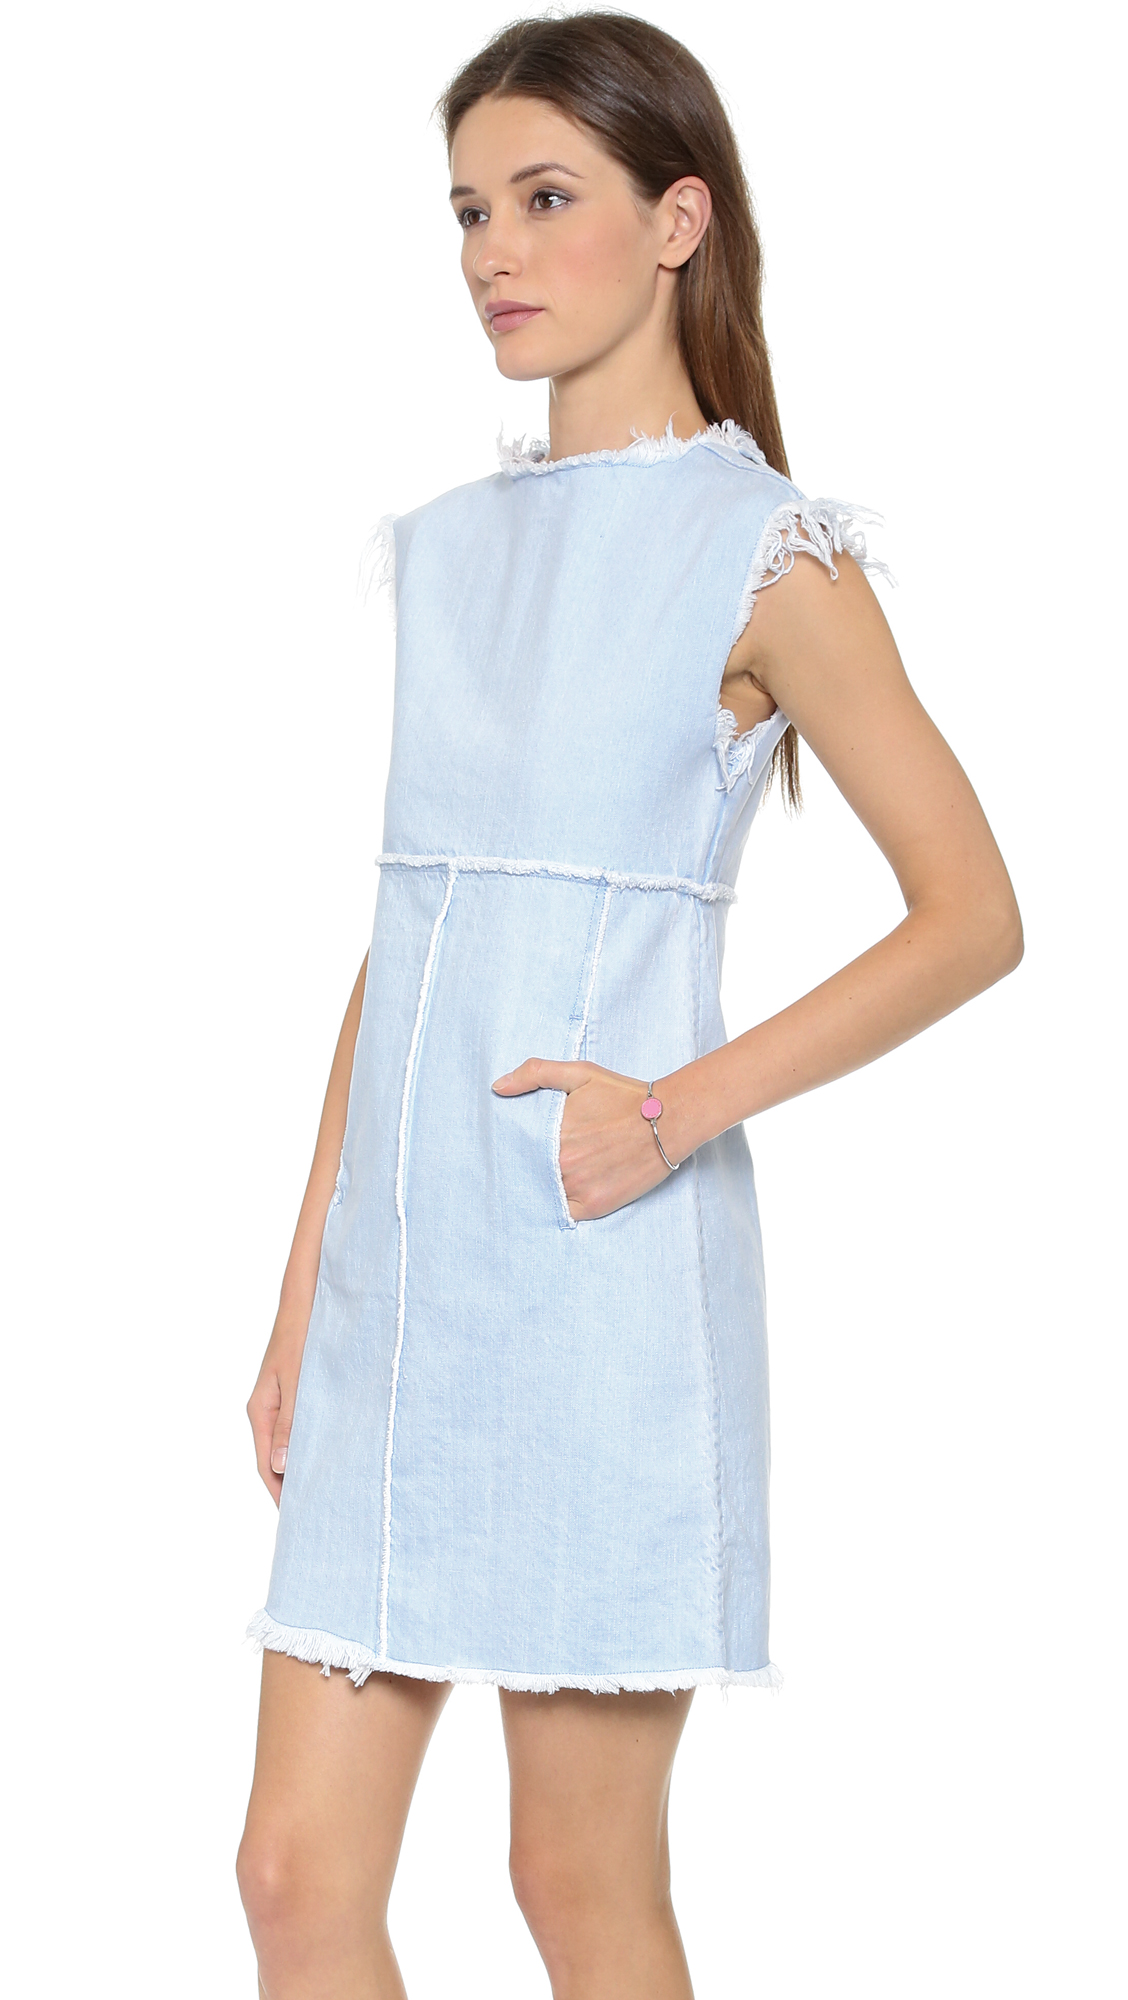 bc2bfbbe86 Marc by Marc Jacobs Frayed Denim Dress